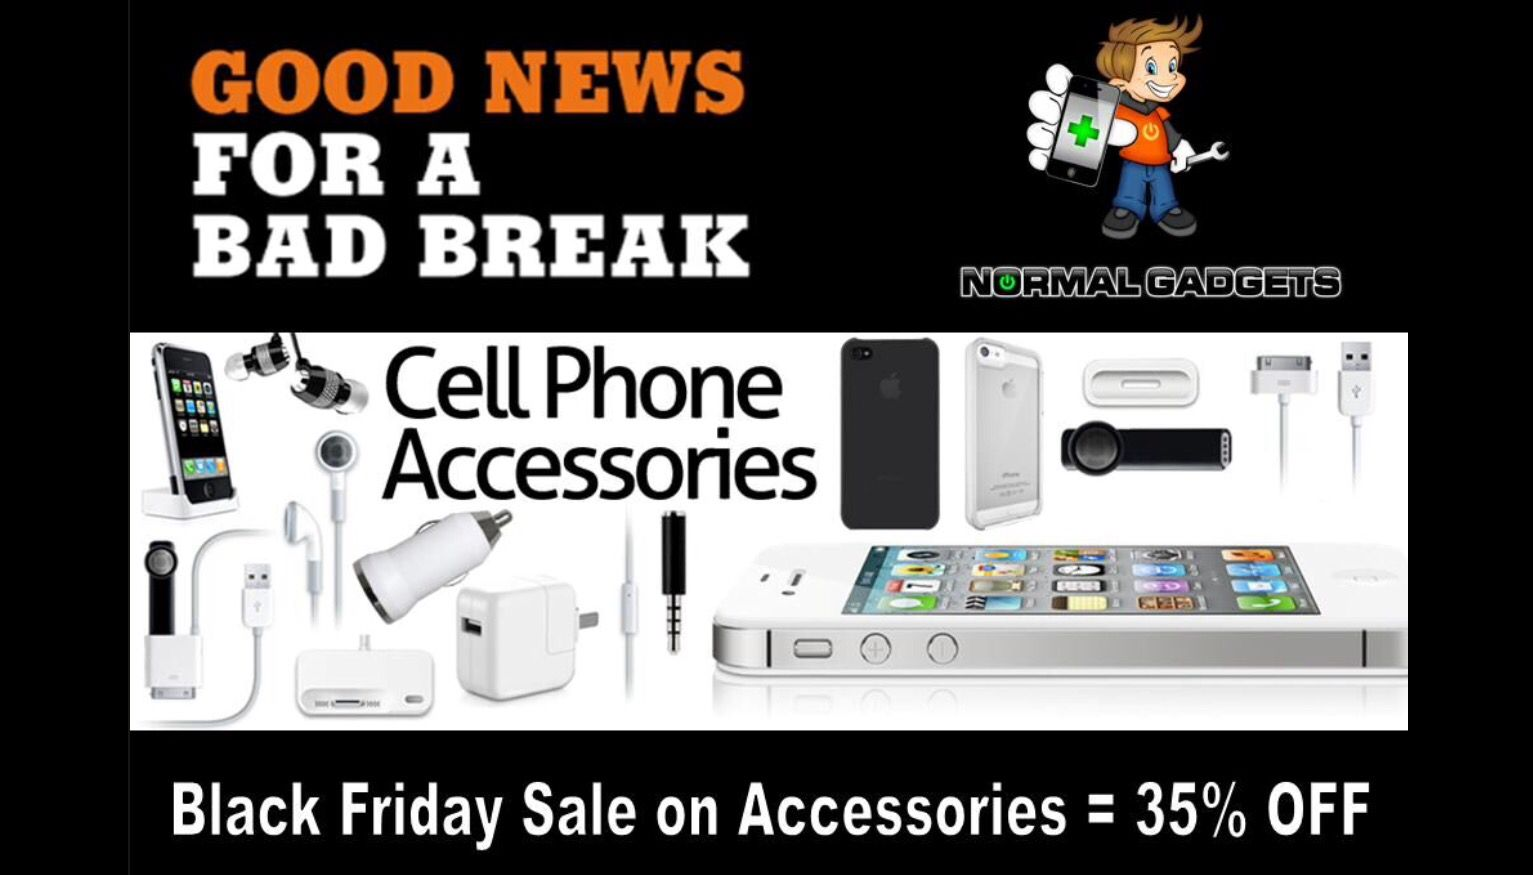 Need a break on Black Friday? Get to @normalgadgets. Not only do we have Hooverboards at Black Friday prices, we are giving an extra 35% discount on all accessories such as cases, screen protectors and chargers. #getbacktonormal #chipgadget #wefixit #blono #peoriail #hooverboard #blackfriday